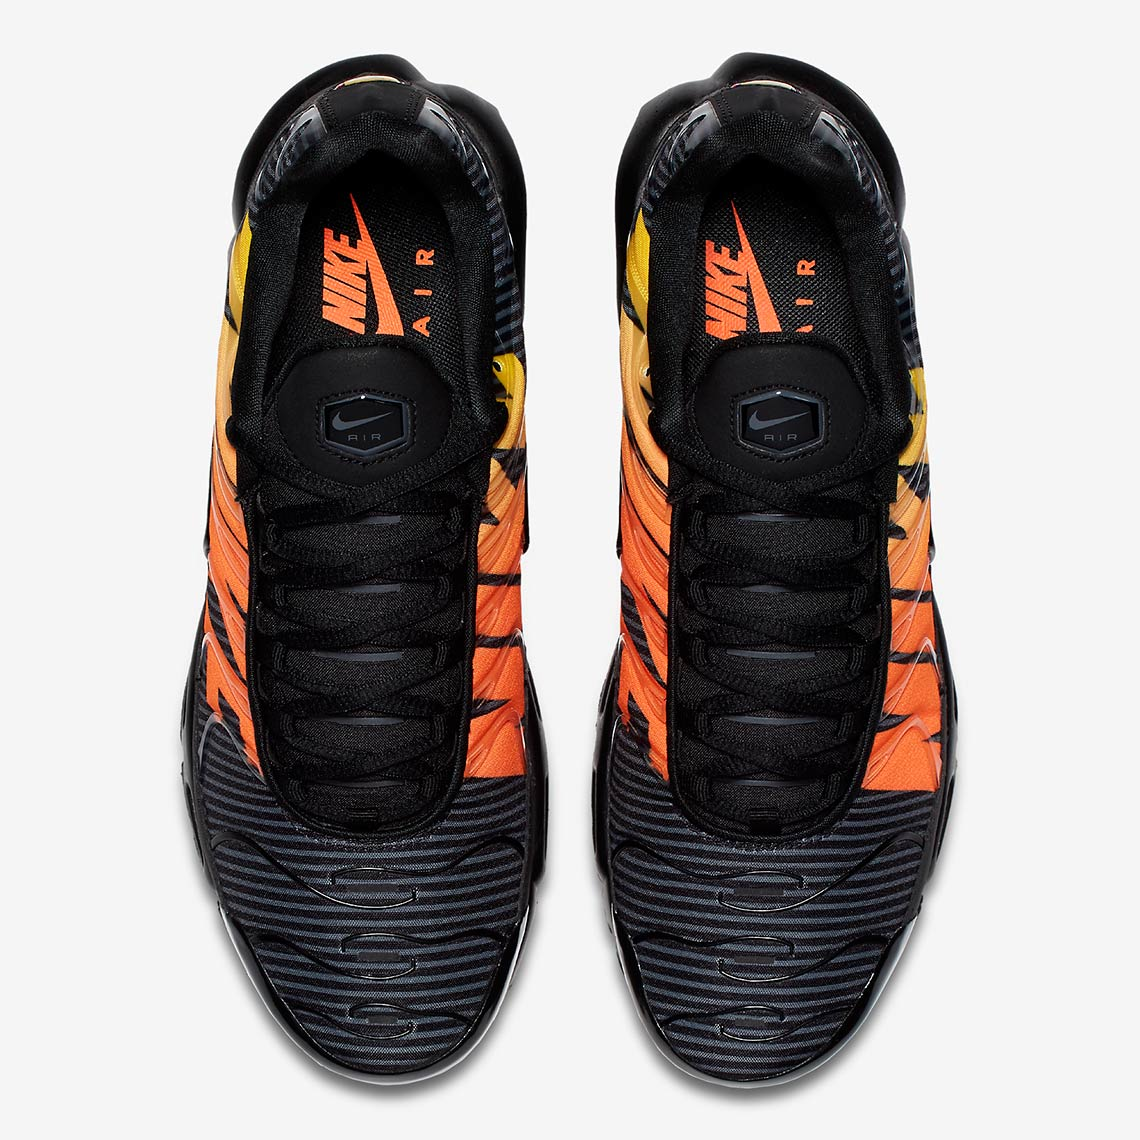 official photos bc61a 7d295 Nike Air Max Plus Mercurial Release Info | SneakerNews.com